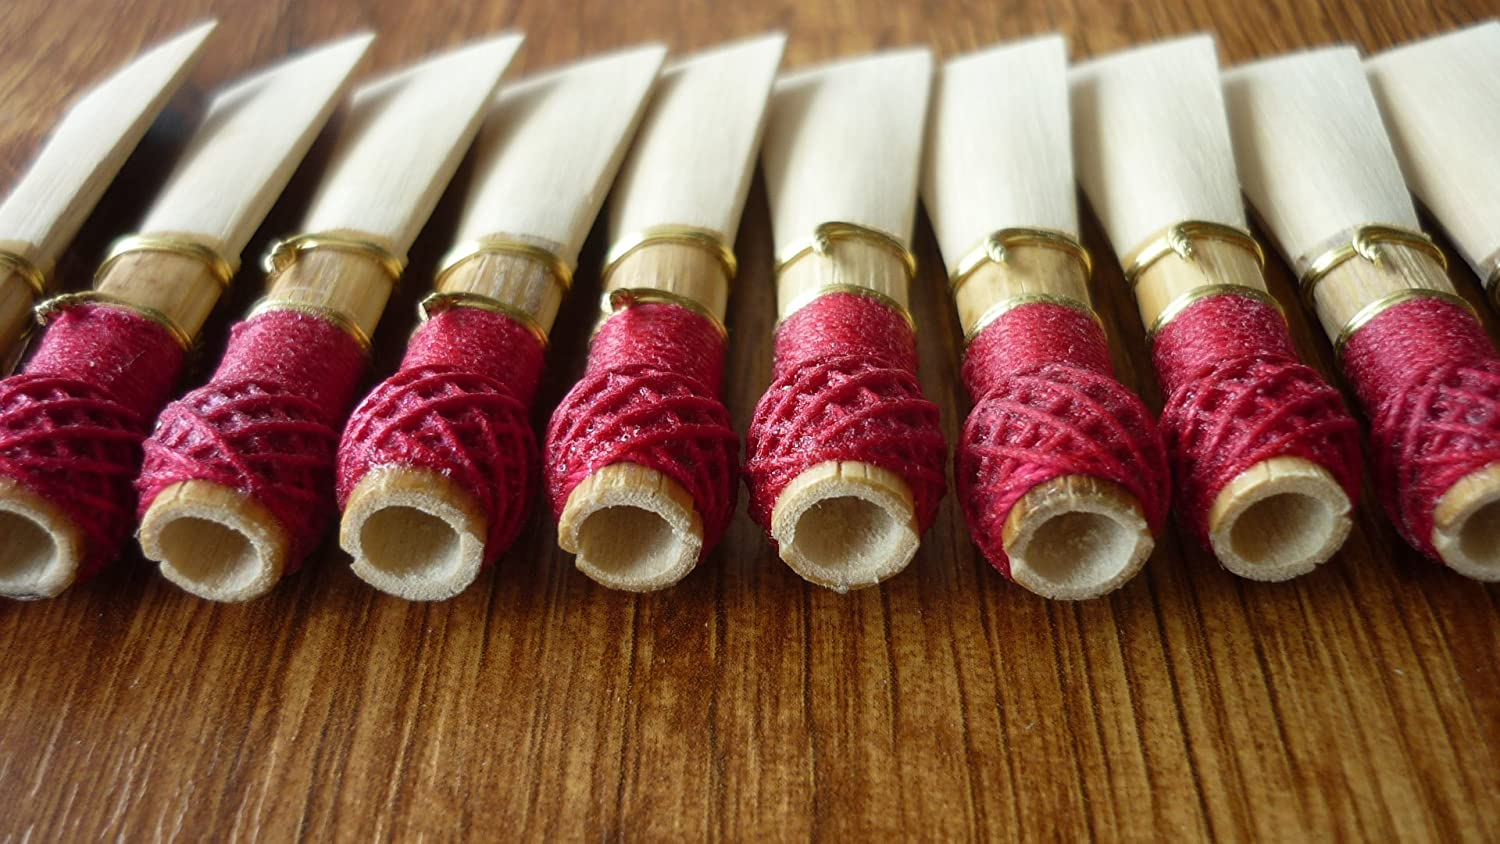 10 Bassoon Reed Blanks from Danzi canes/dukov_reeds DzF2/ 072018